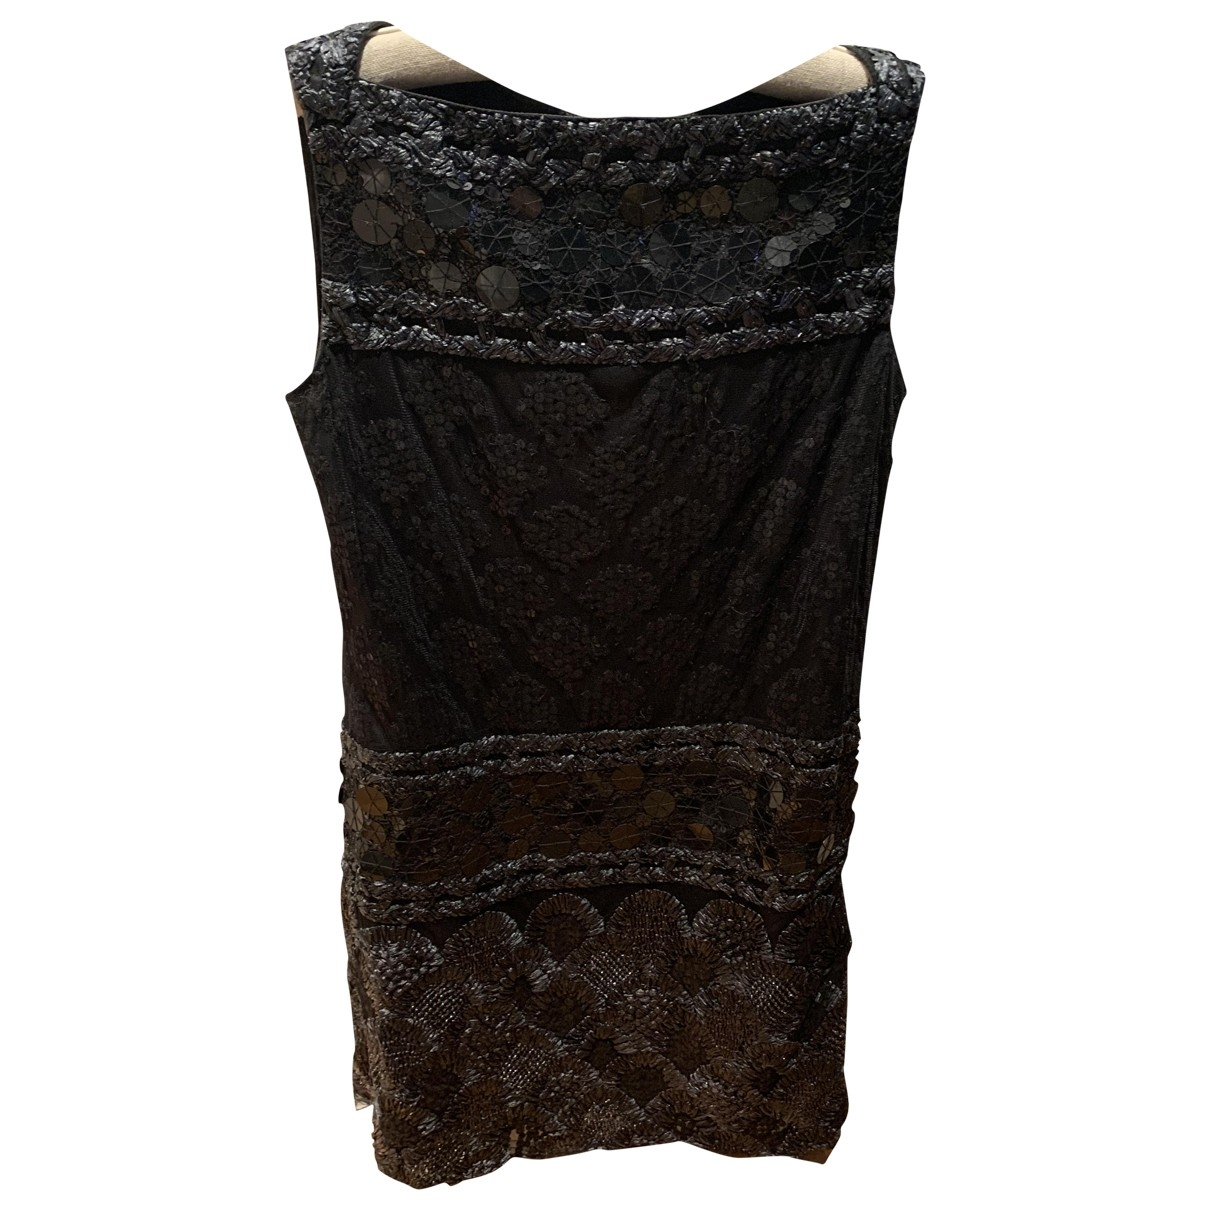 Hoss Intropia \N Black Glitter dress for Women 8 UK